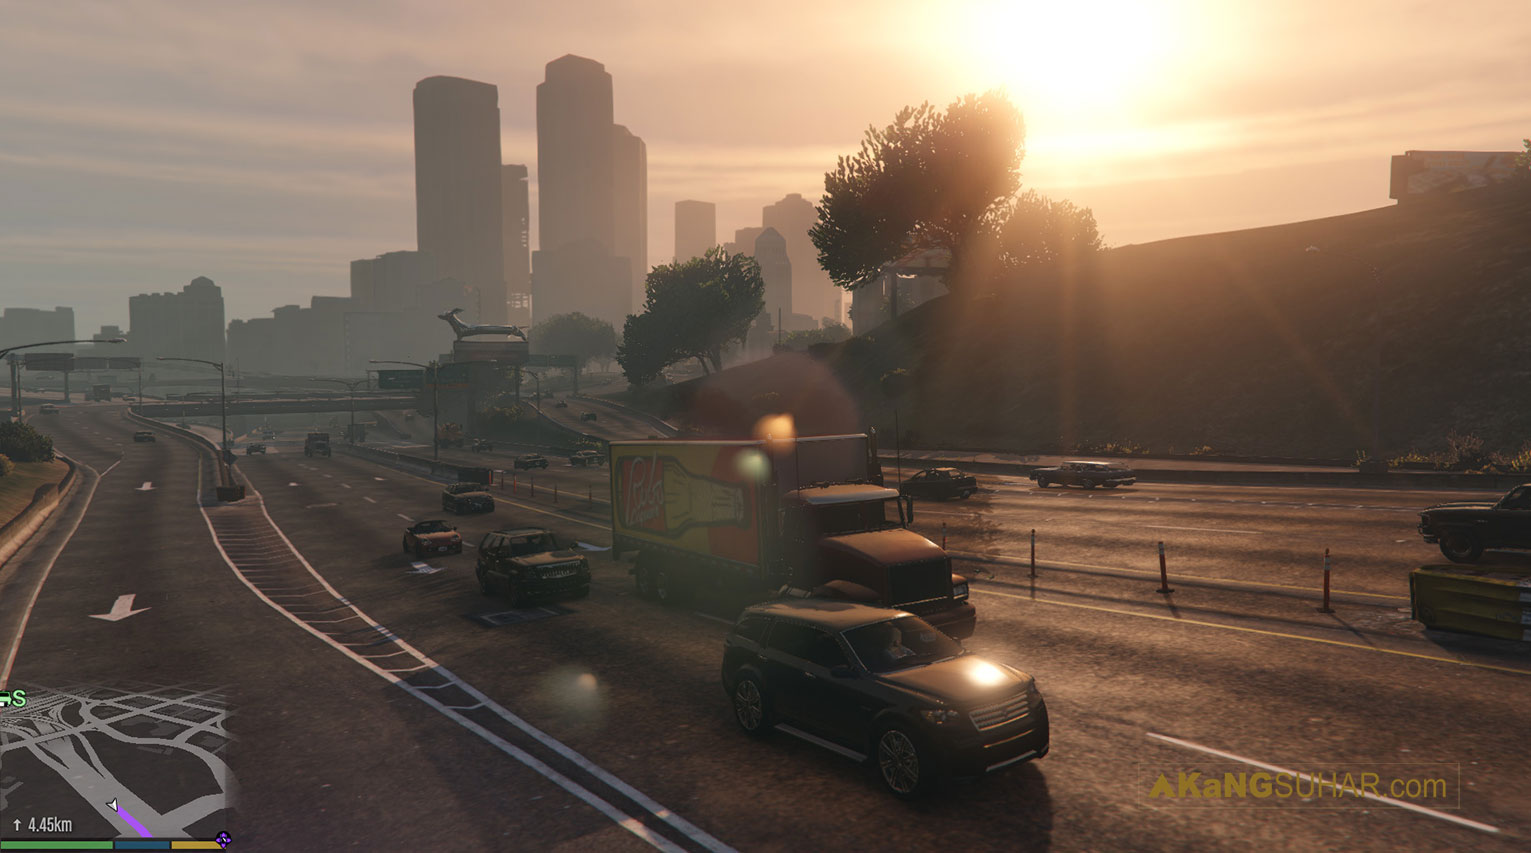 Download Grand Theft Auto V MULTi11 Ultra Repack Full update